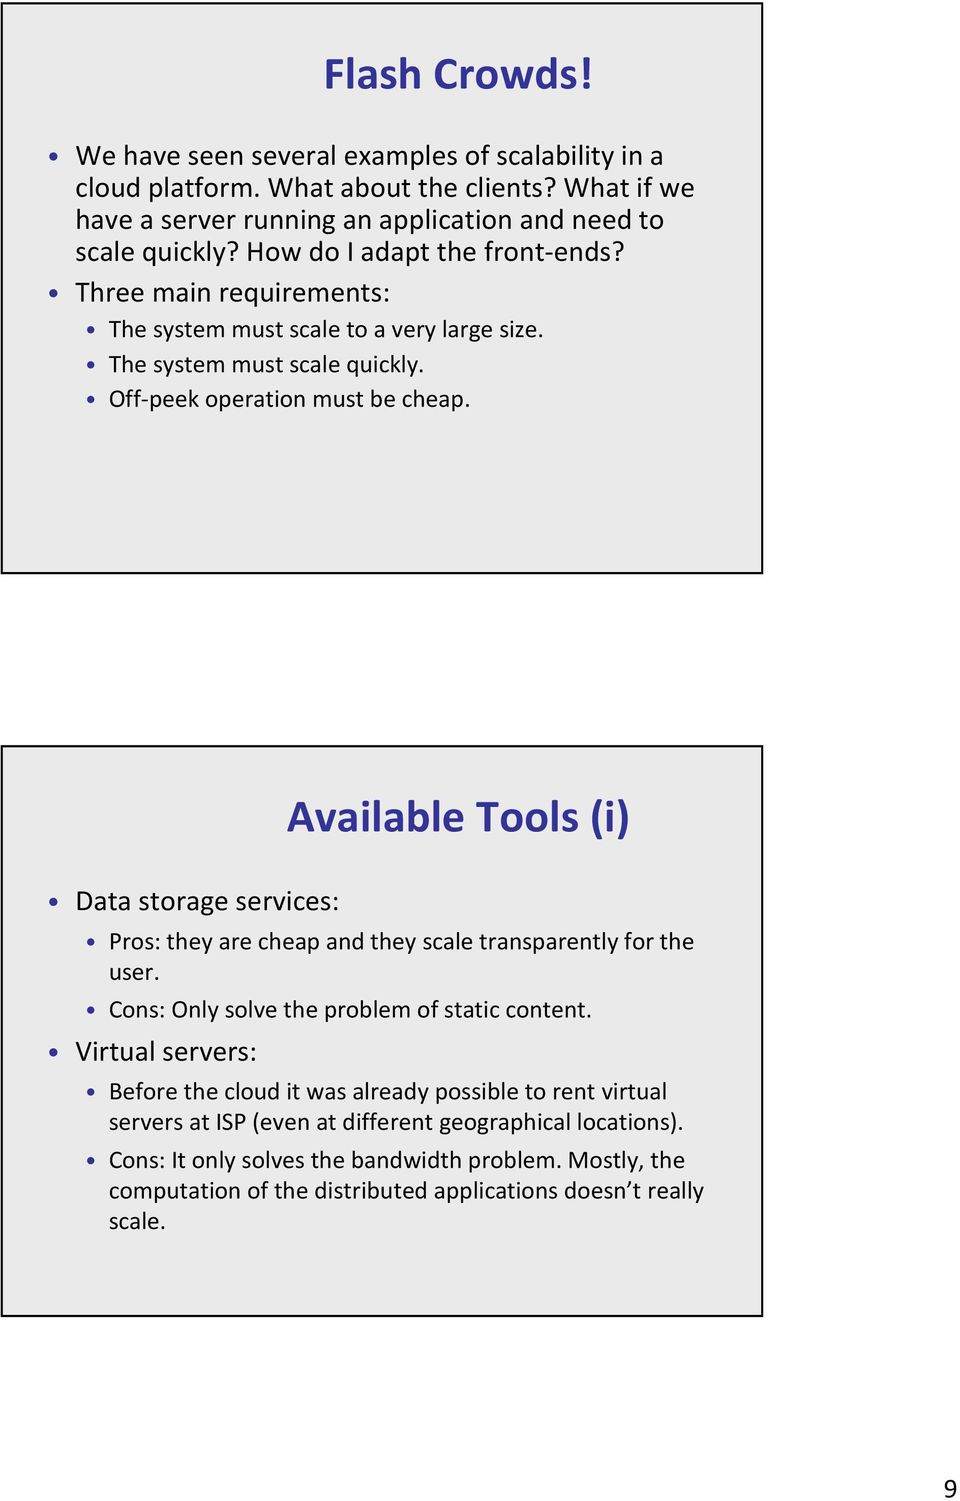 Data storage services: Available Tools (i) Pros: they are cheap and they scale transparently for the user. Cons: Only solve the problem of static content.